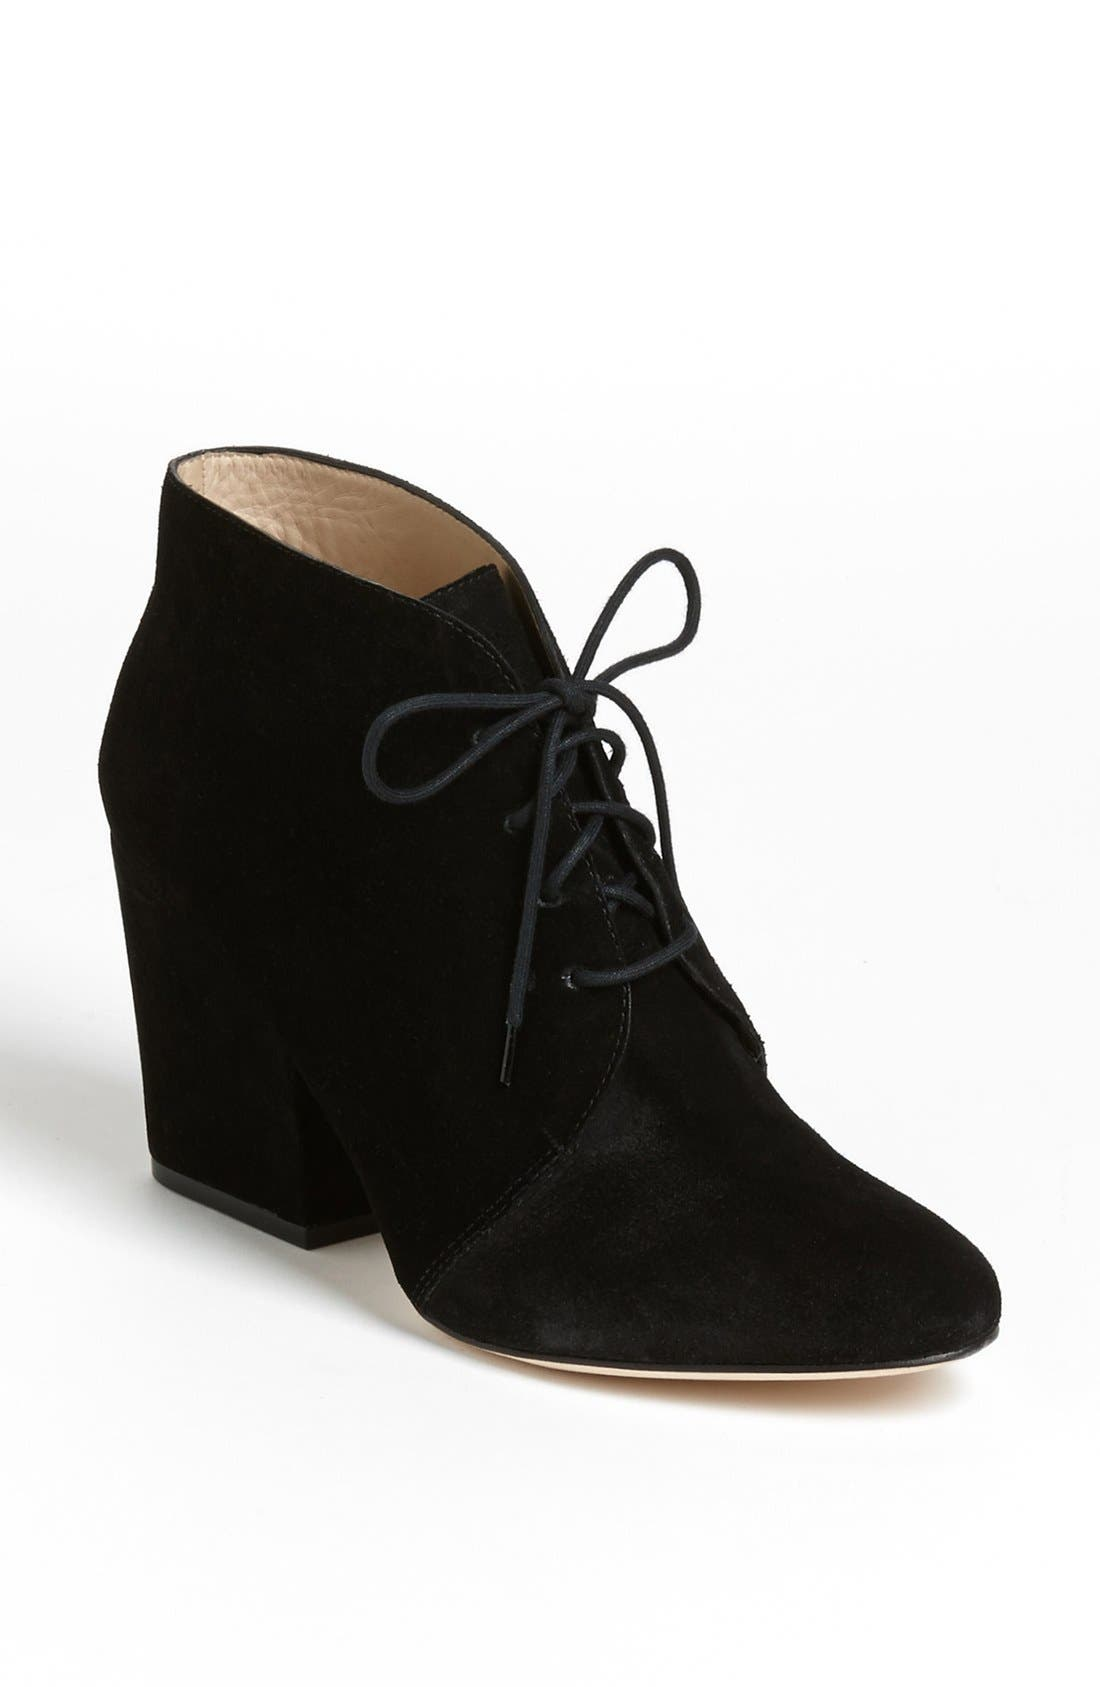 Main Image - kate spade new york 'roger' bootie